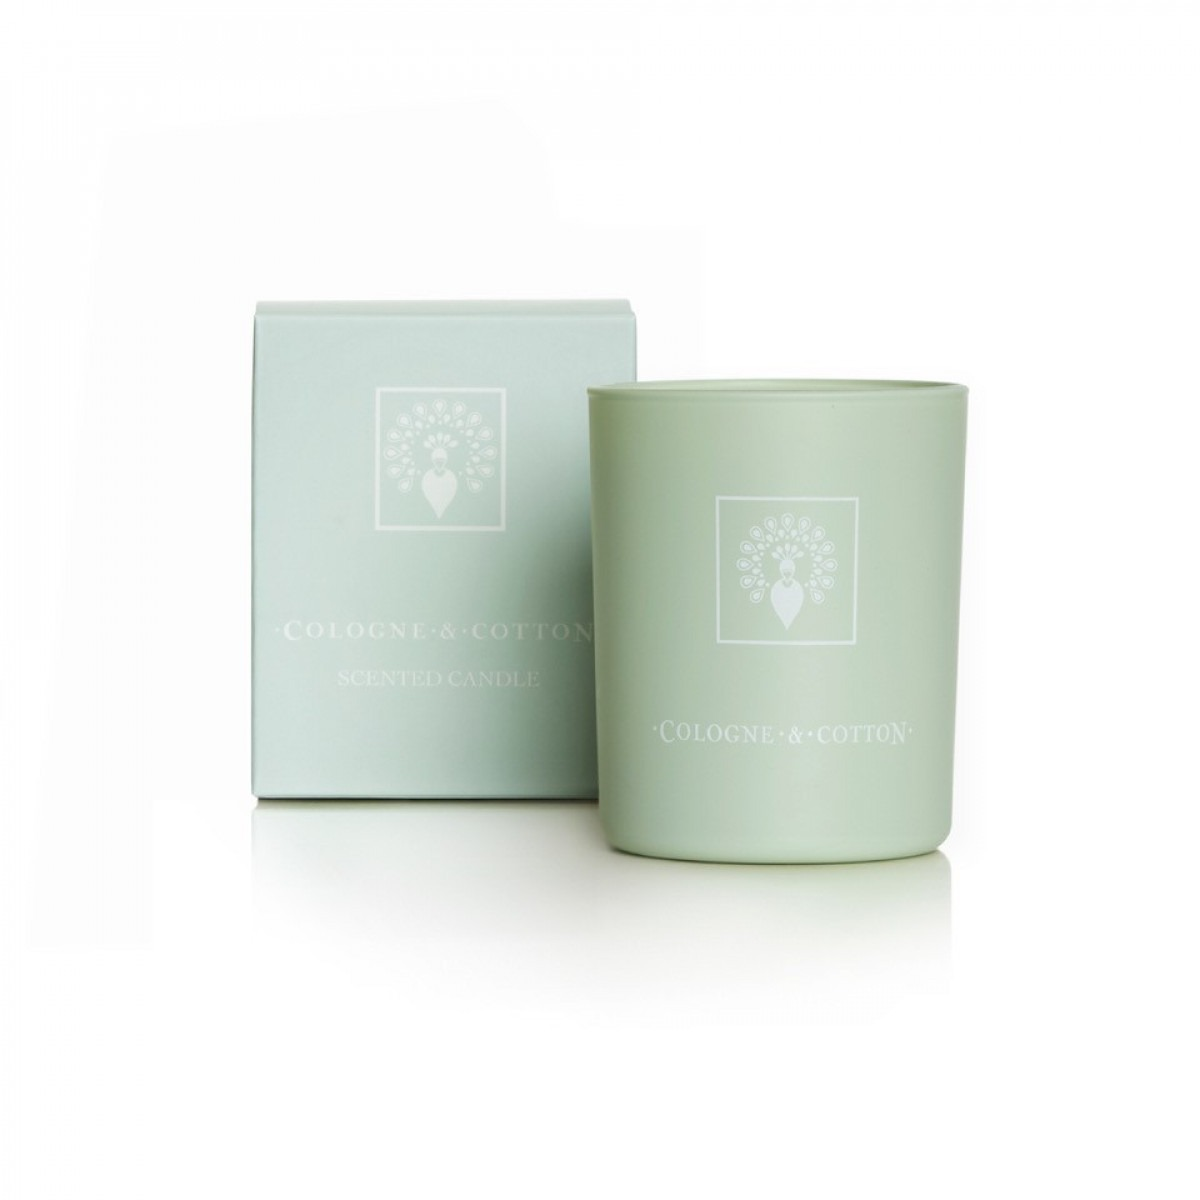 Cologne & Cotton Candle Velvet Rose And Oud 180g